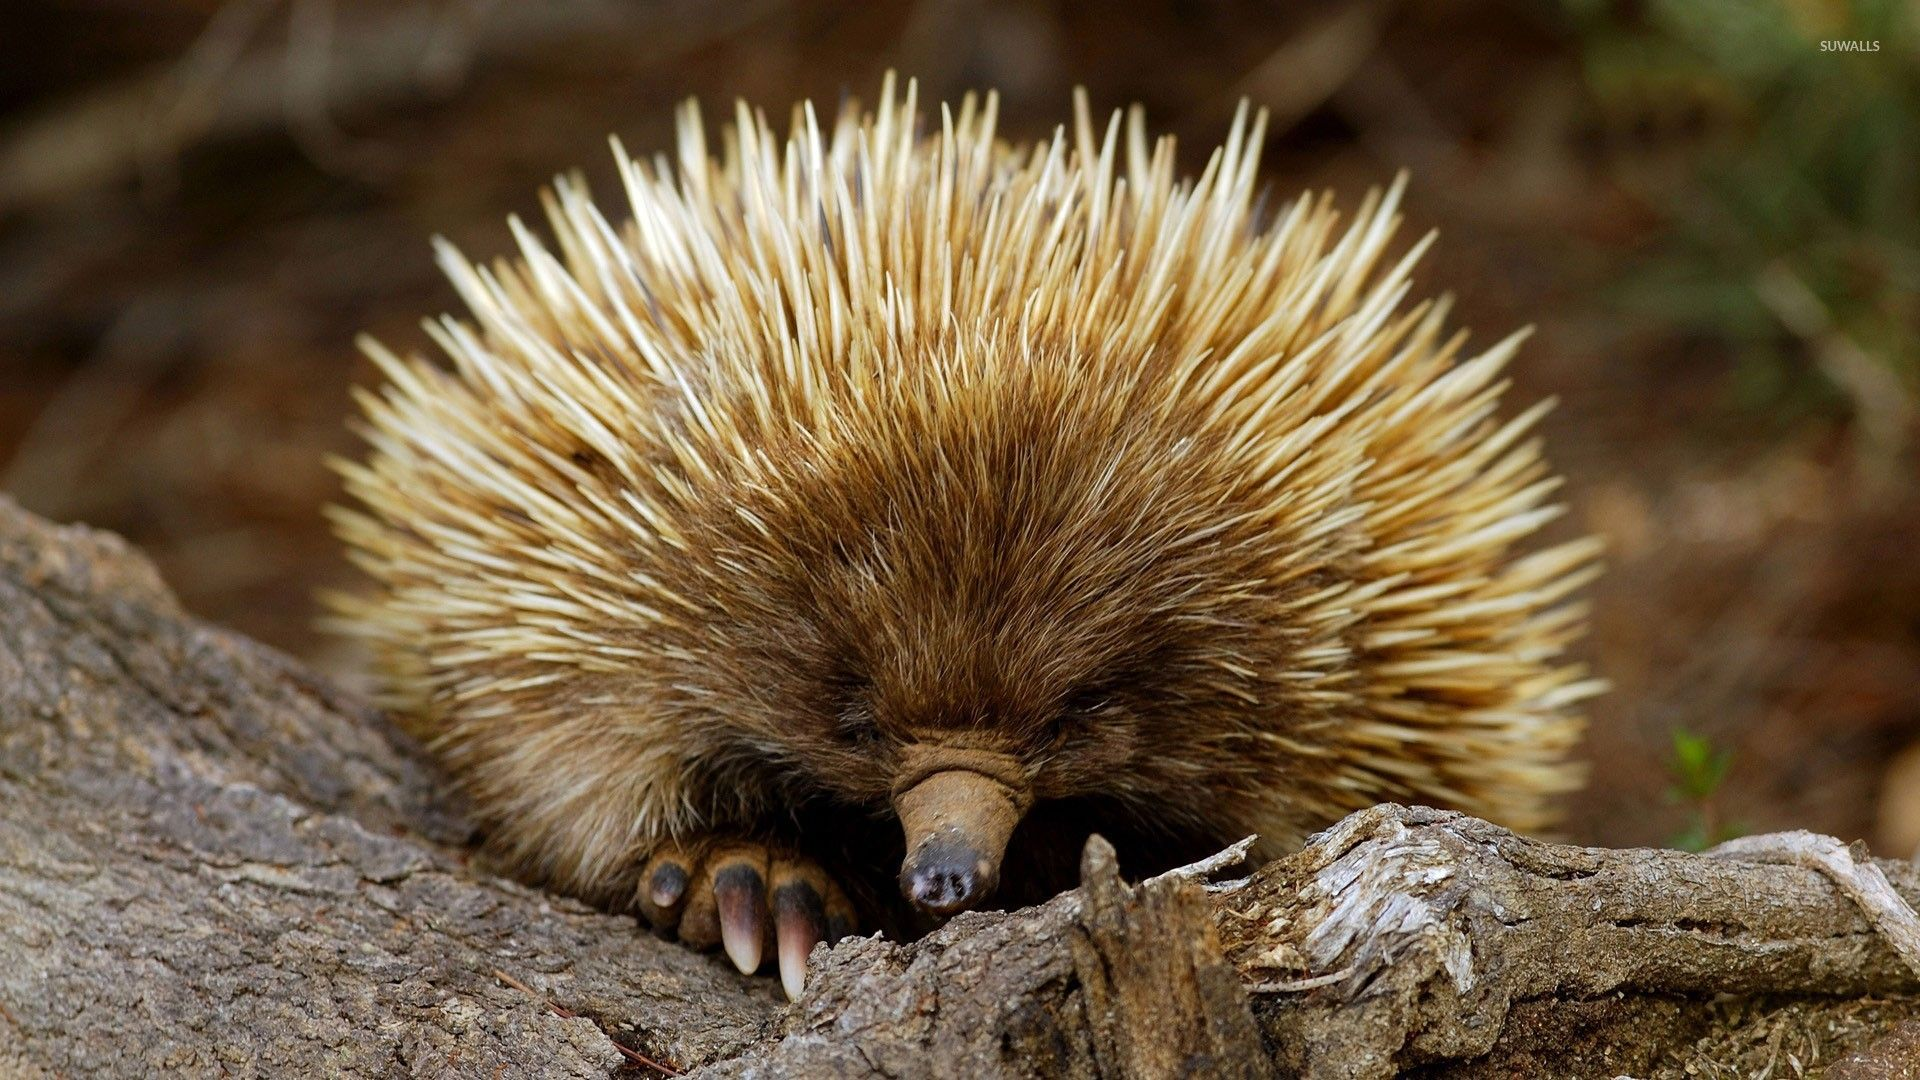 Porcupine [2] wallpapers